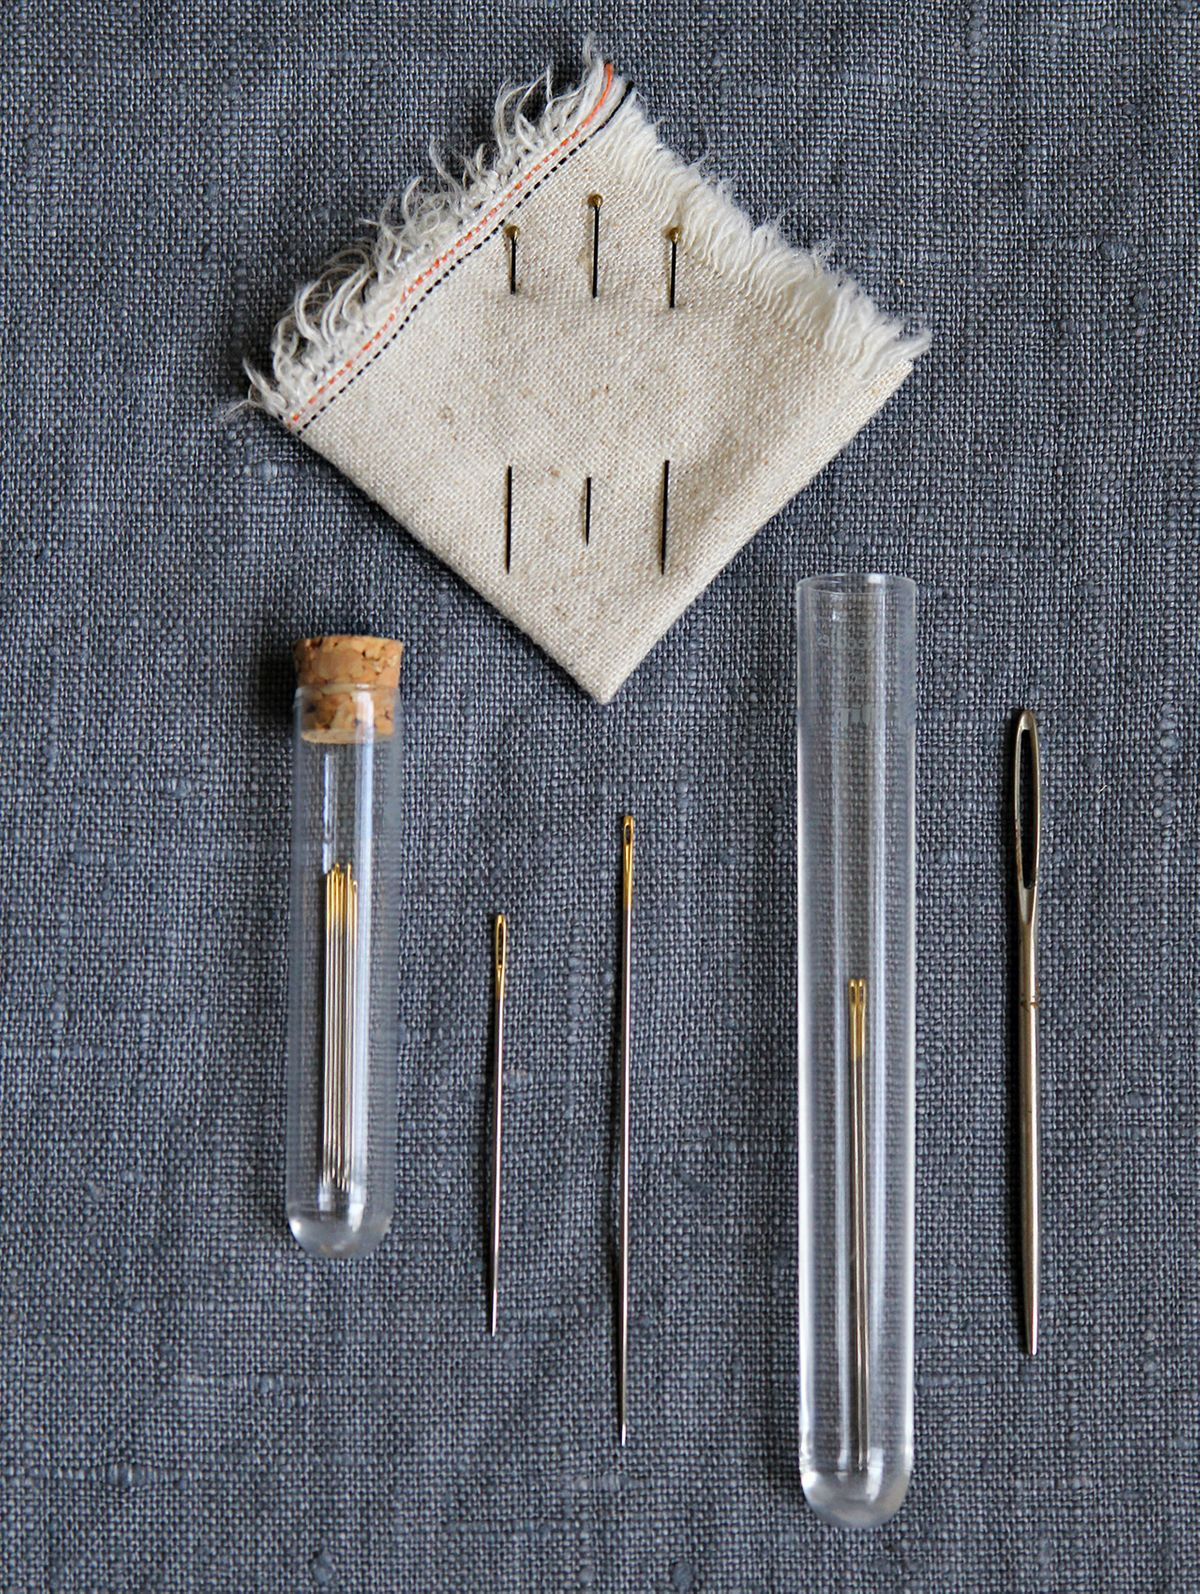 26 sewing-happiness-vintage-needles.jpg